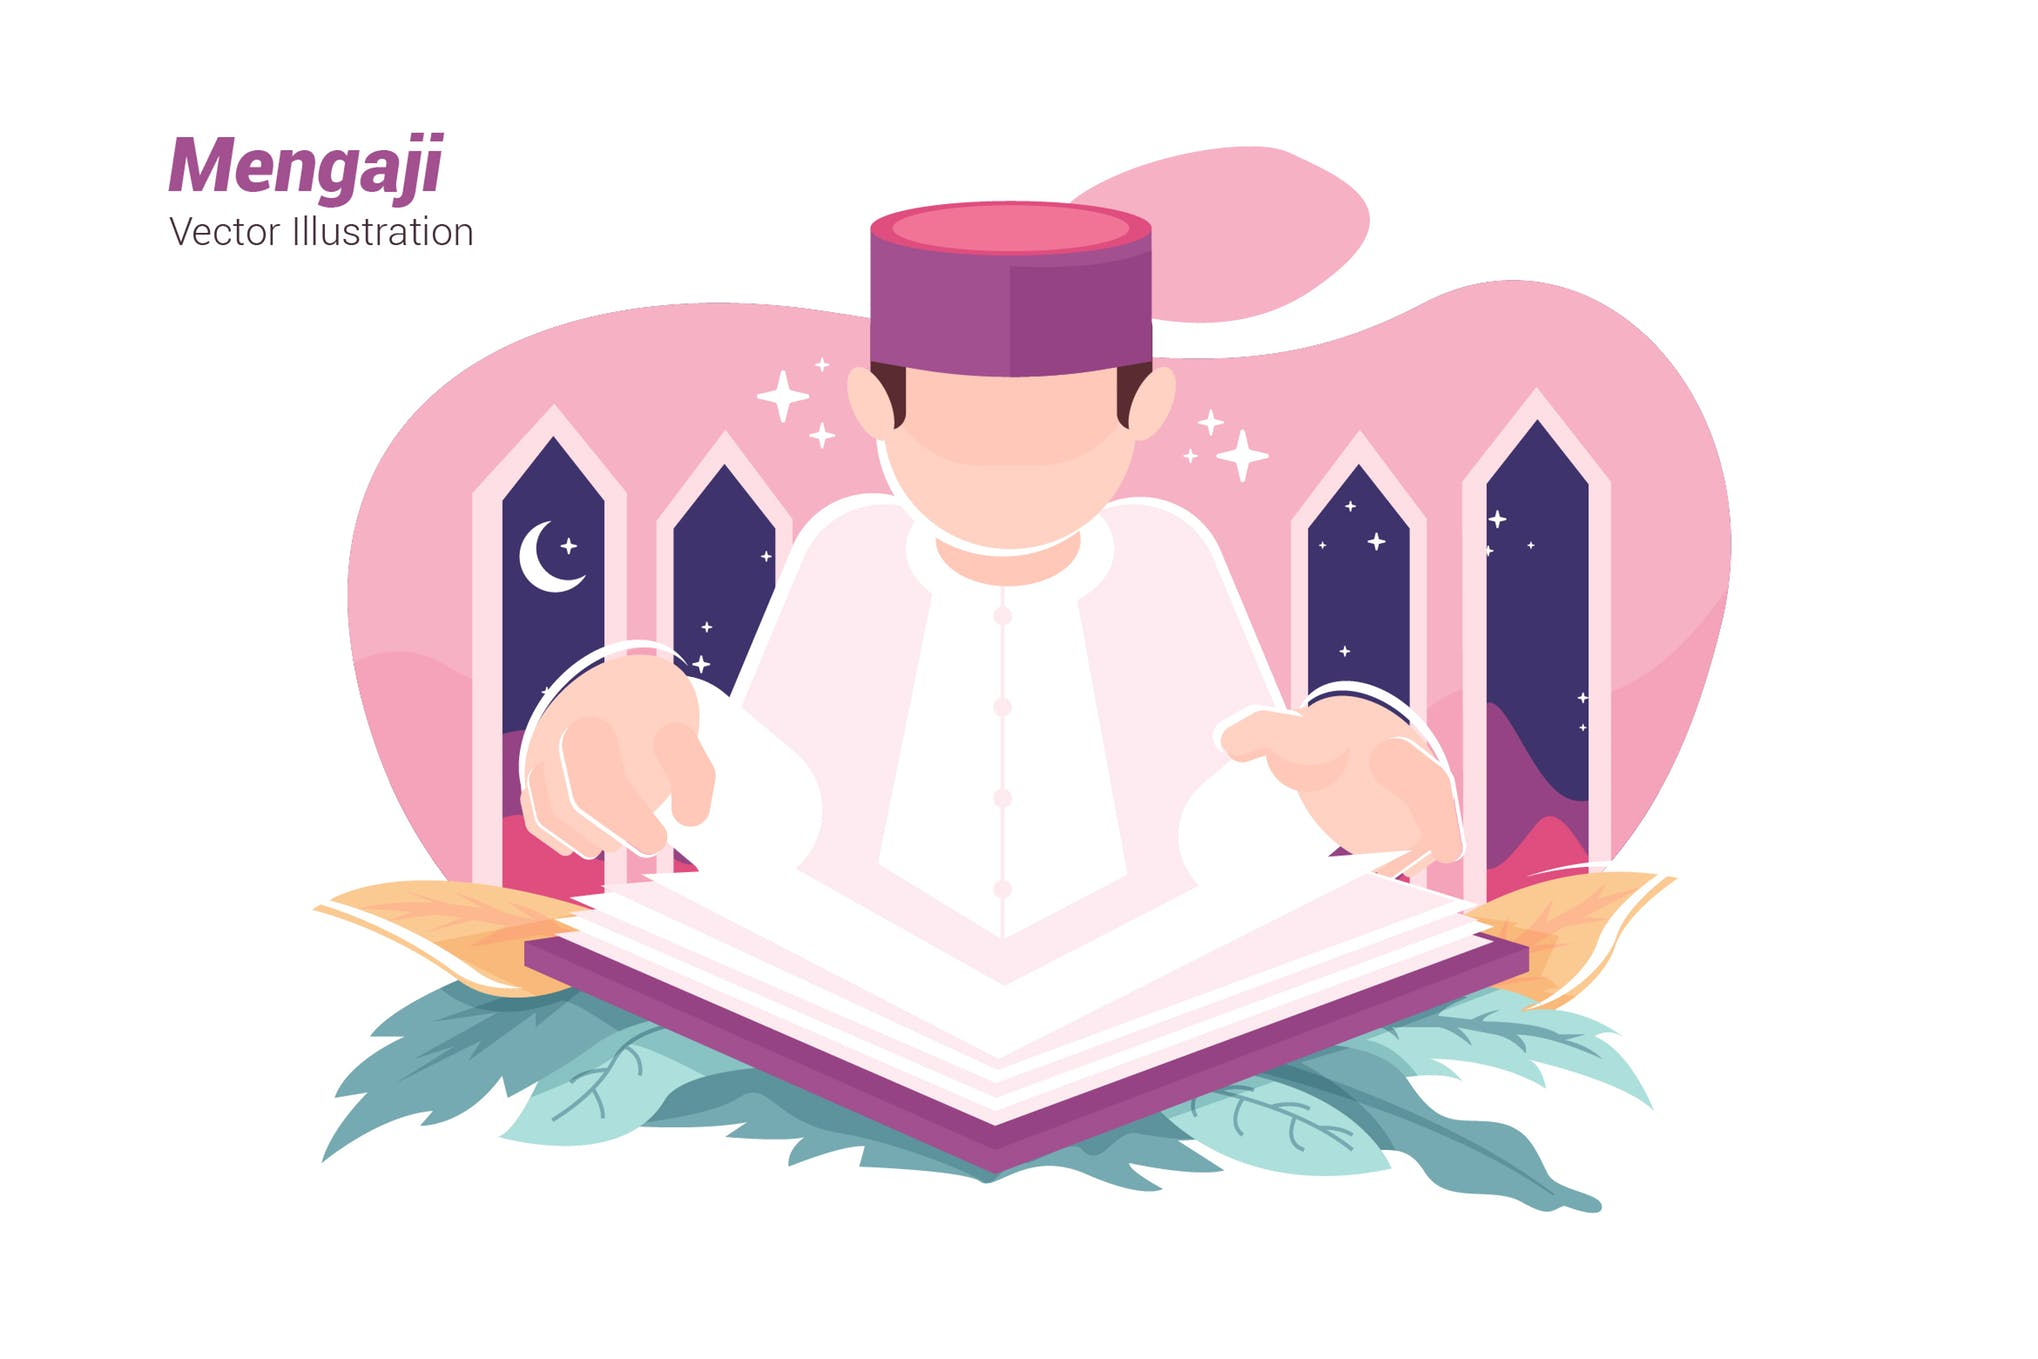 学习场景模板素材下载Recites Quran - Vector Illustration